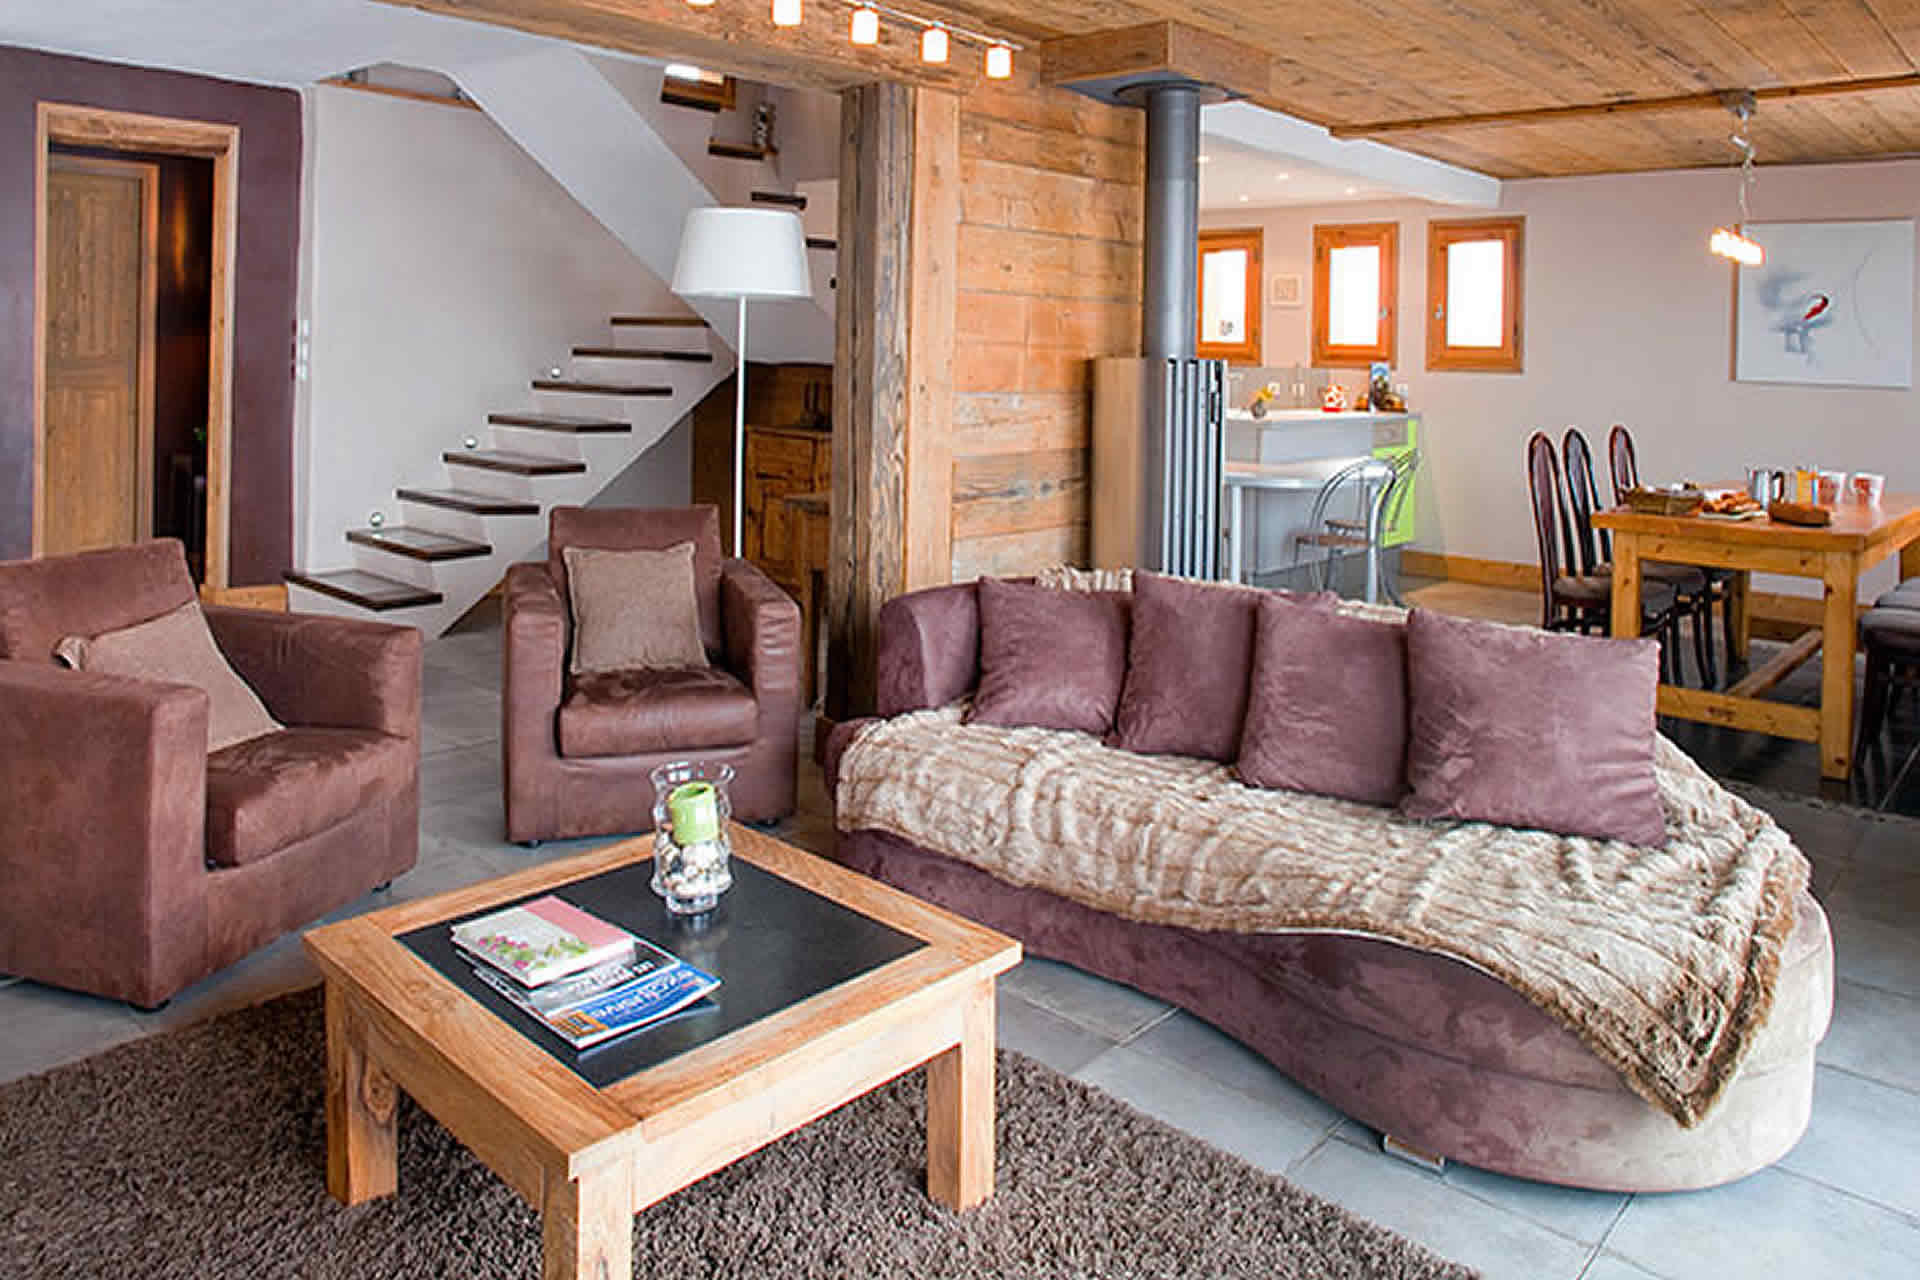 chambres_chalet3